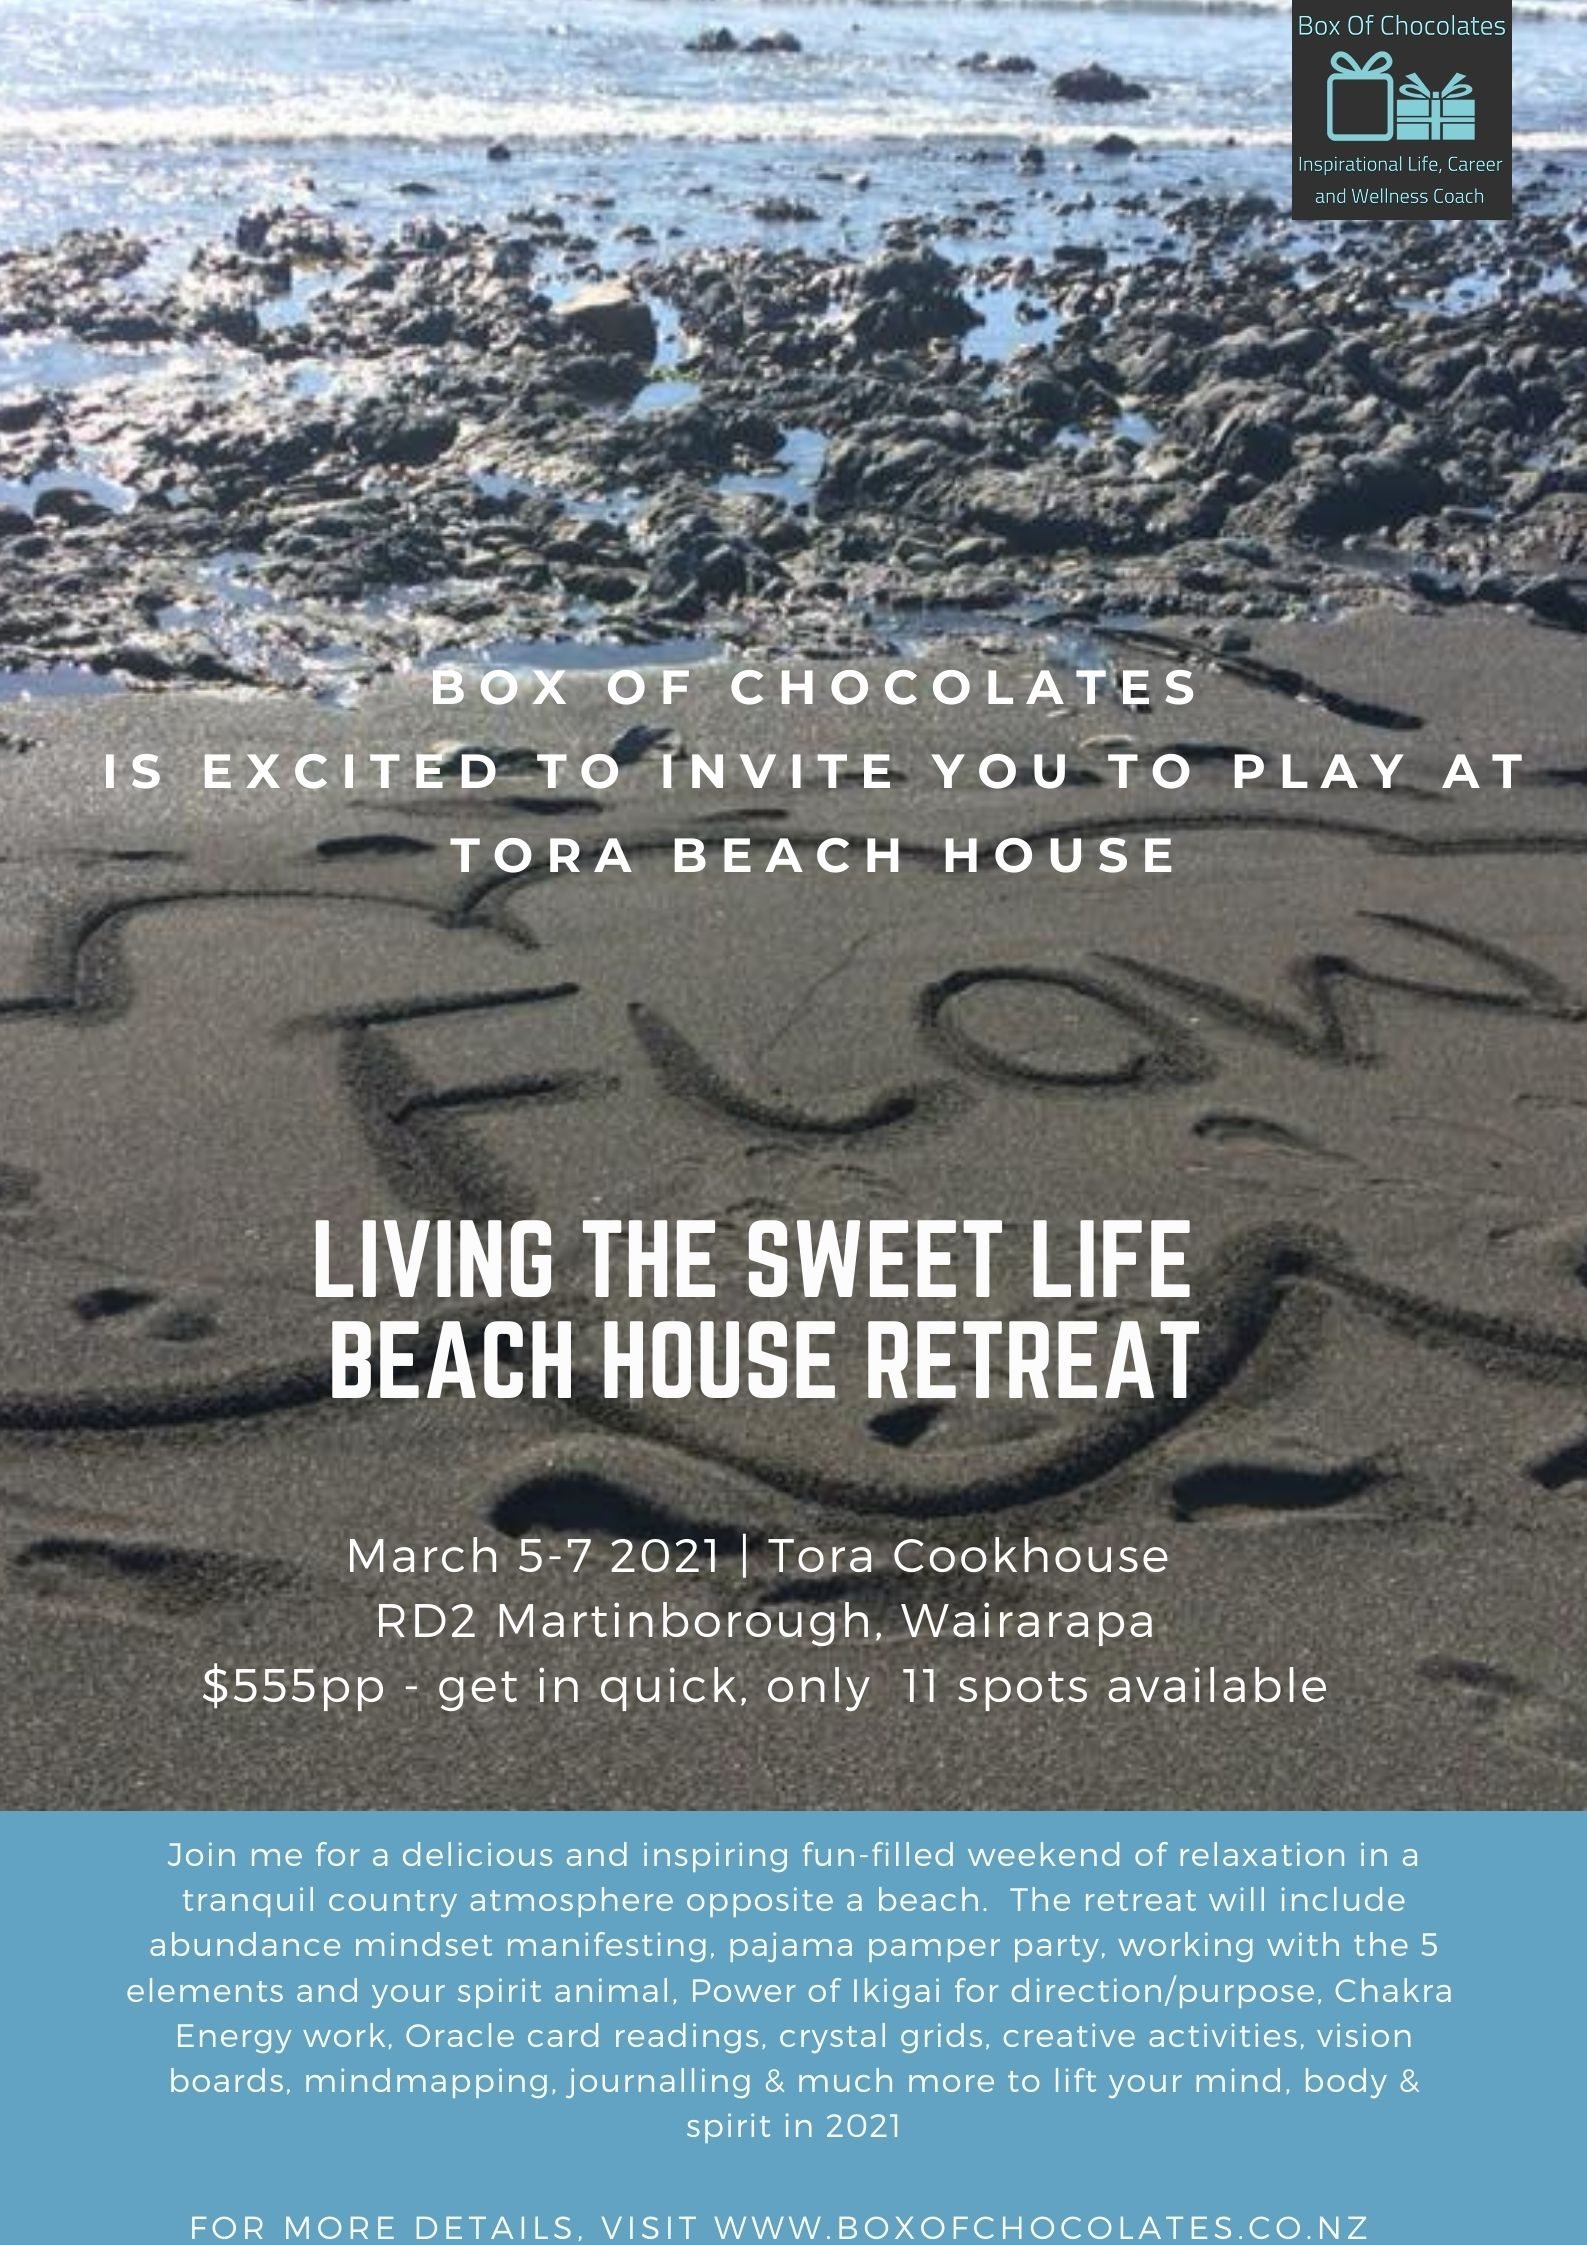 Living the Sweet Life Beach House Retreat